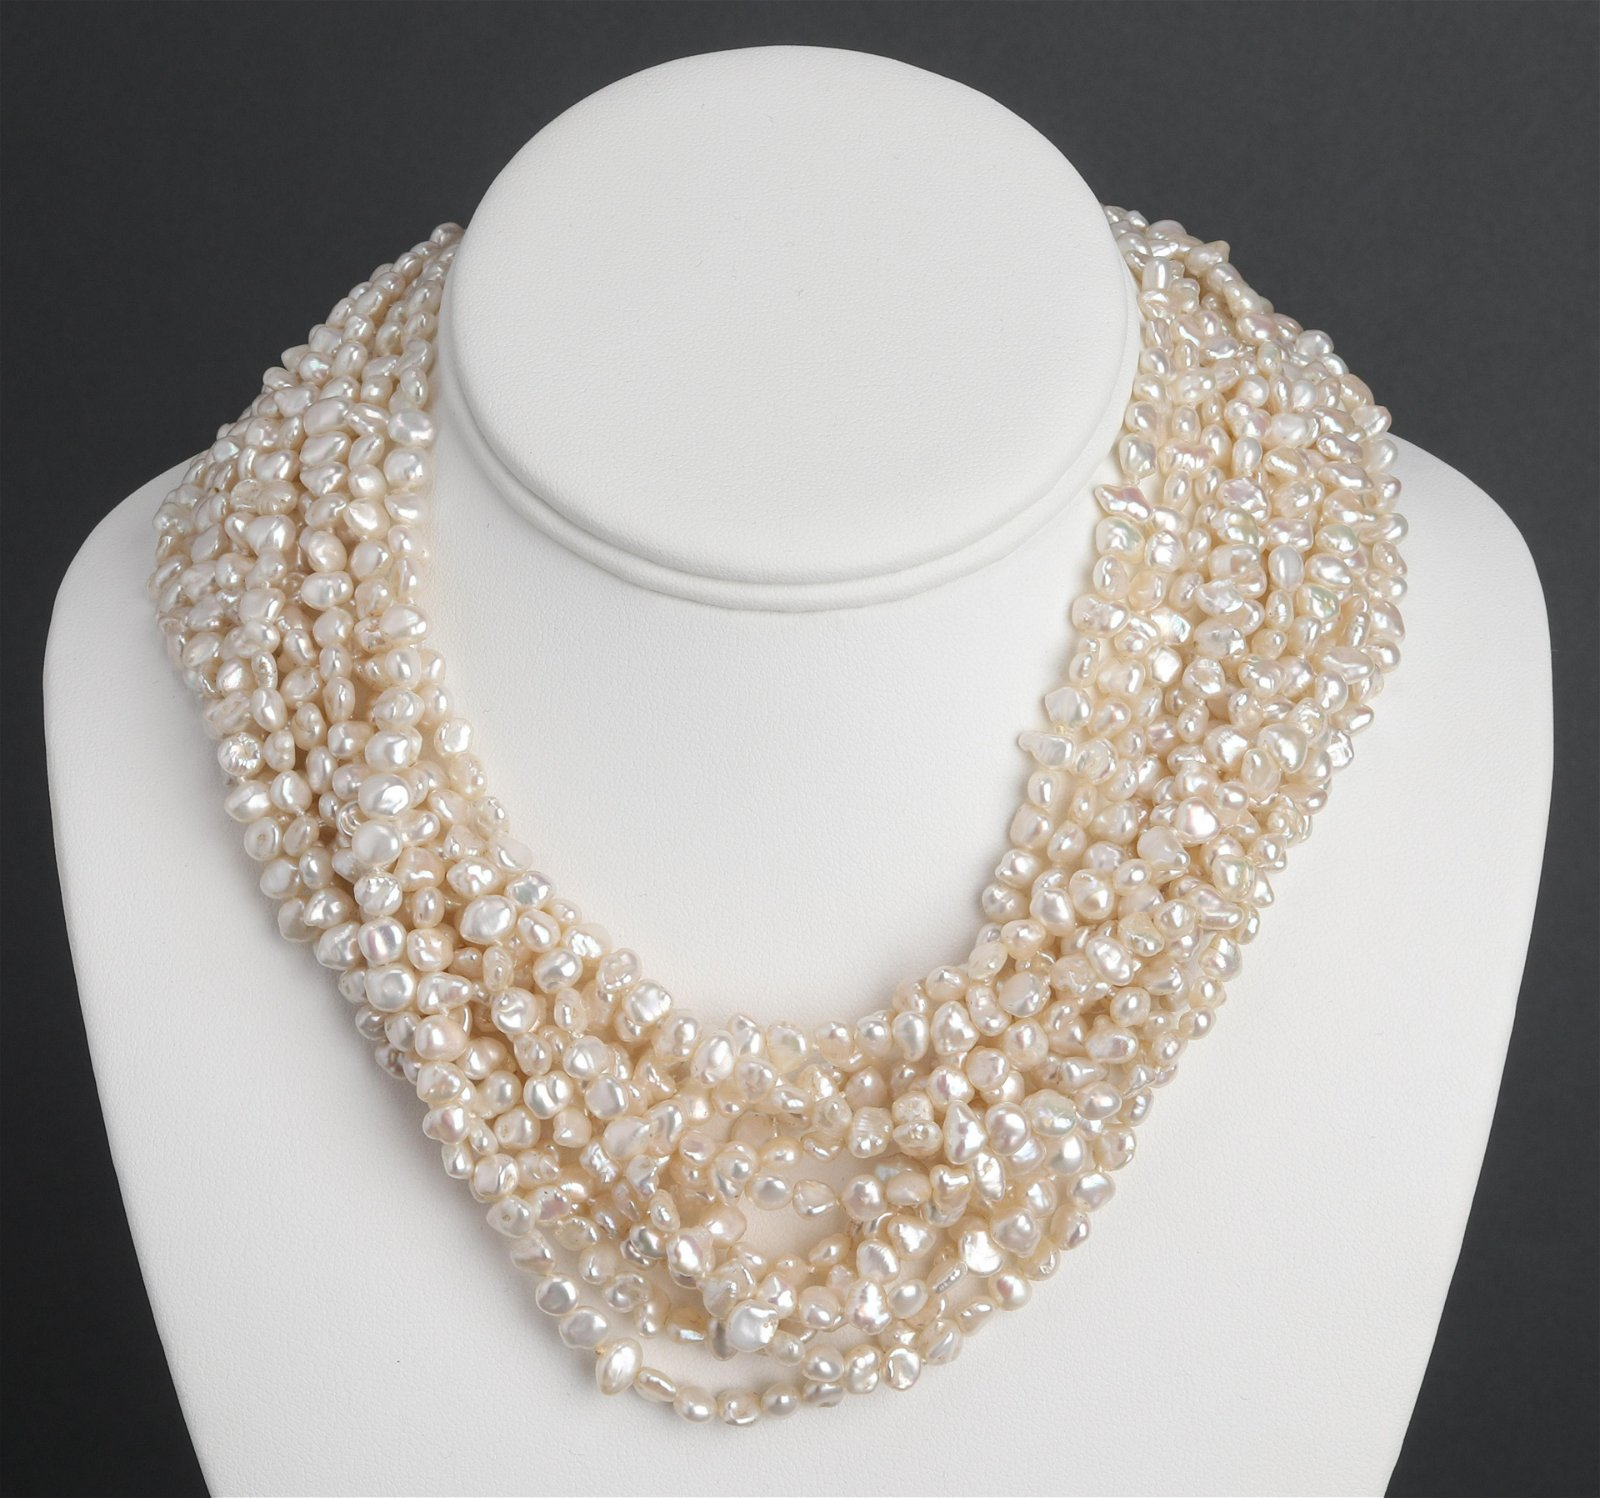 18K Yellow Gold Diamond & Pearl Necklace